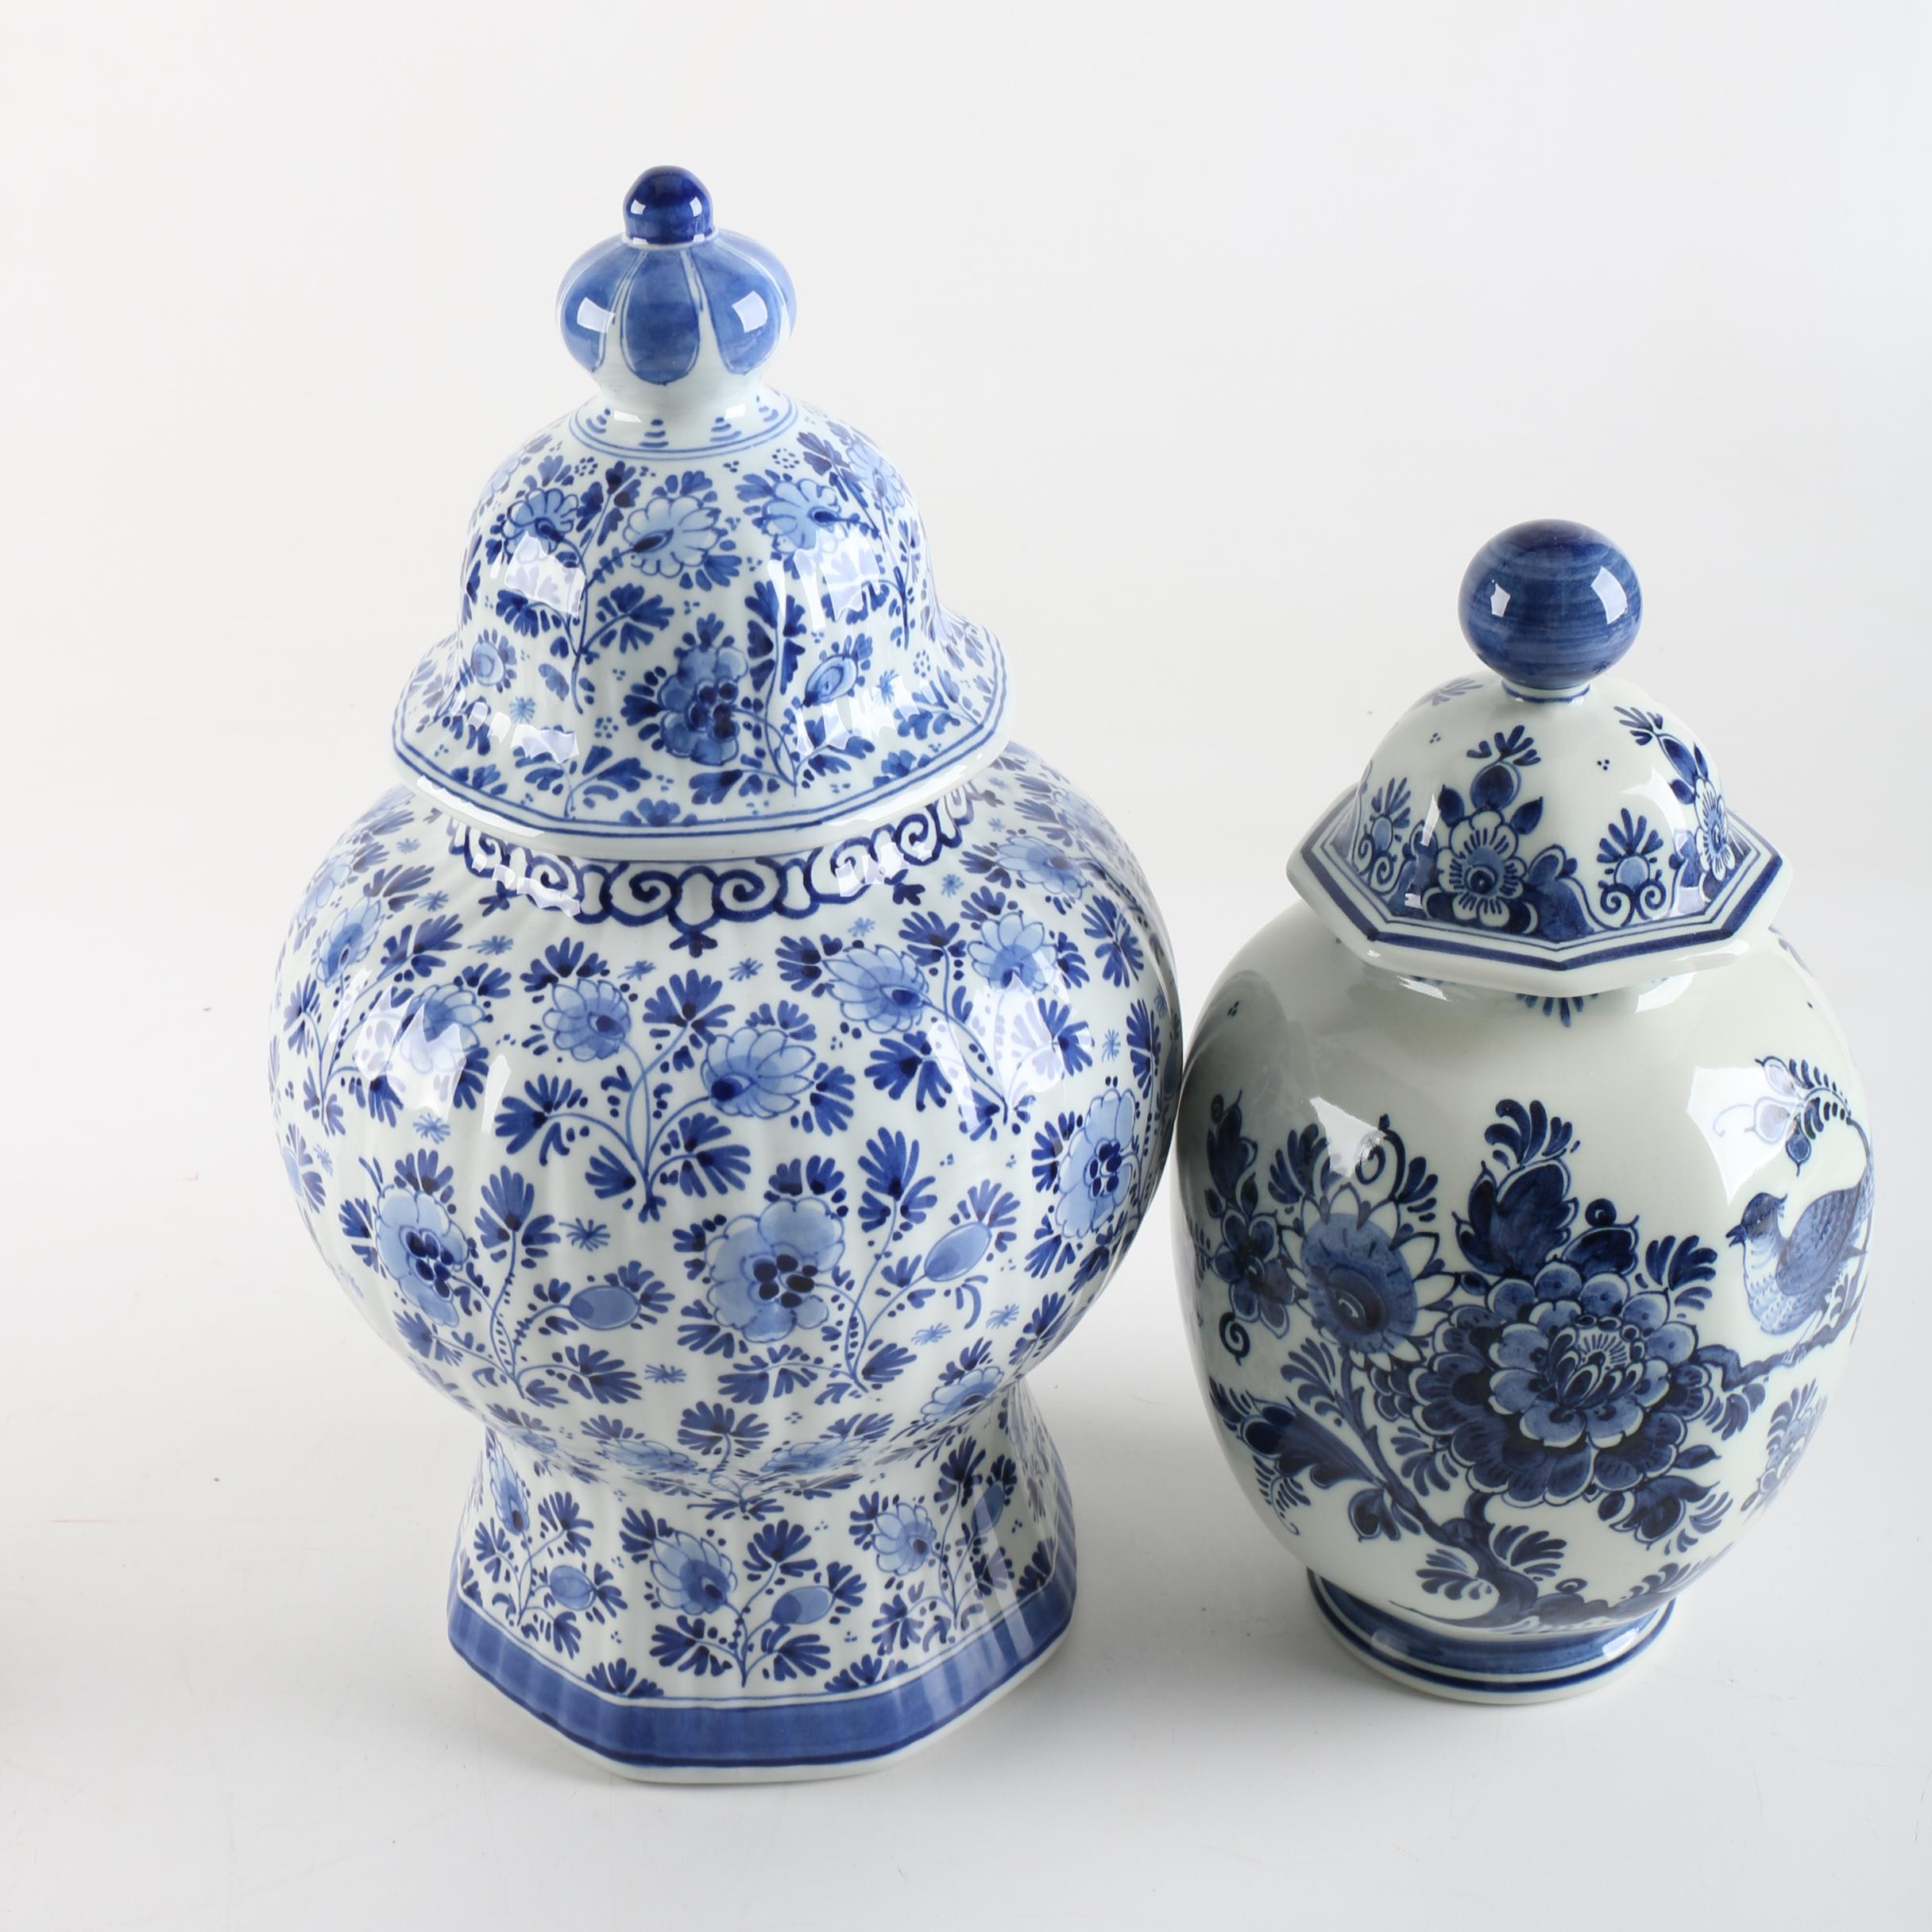 Hand-Painted Delft Style Jars Including Royal Delft and Zenith